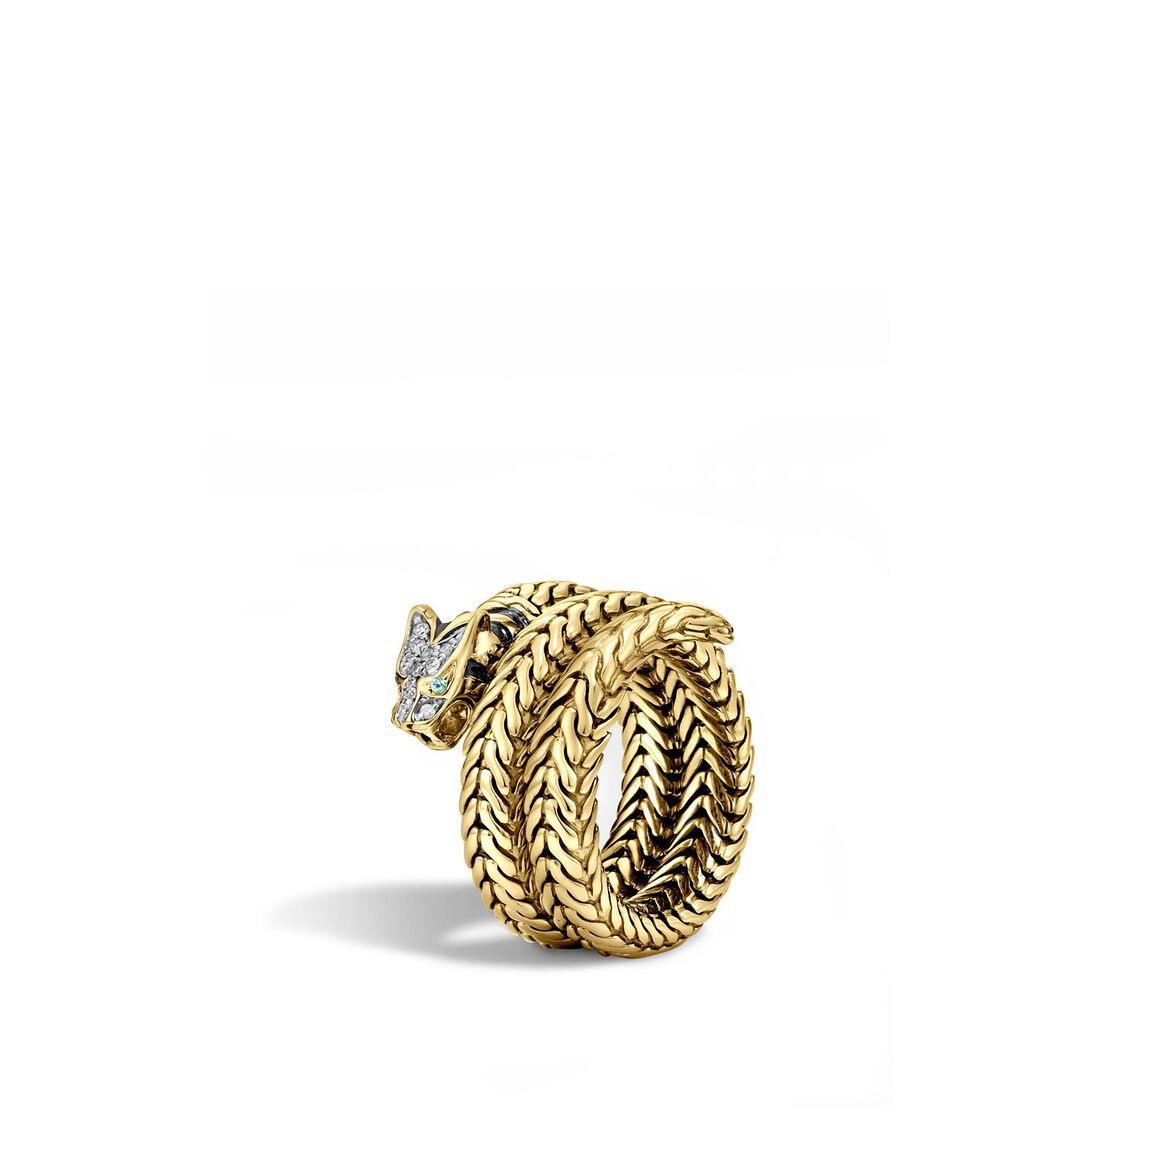 Legends Macan Coil Ring in 18K Gold with Diamonds